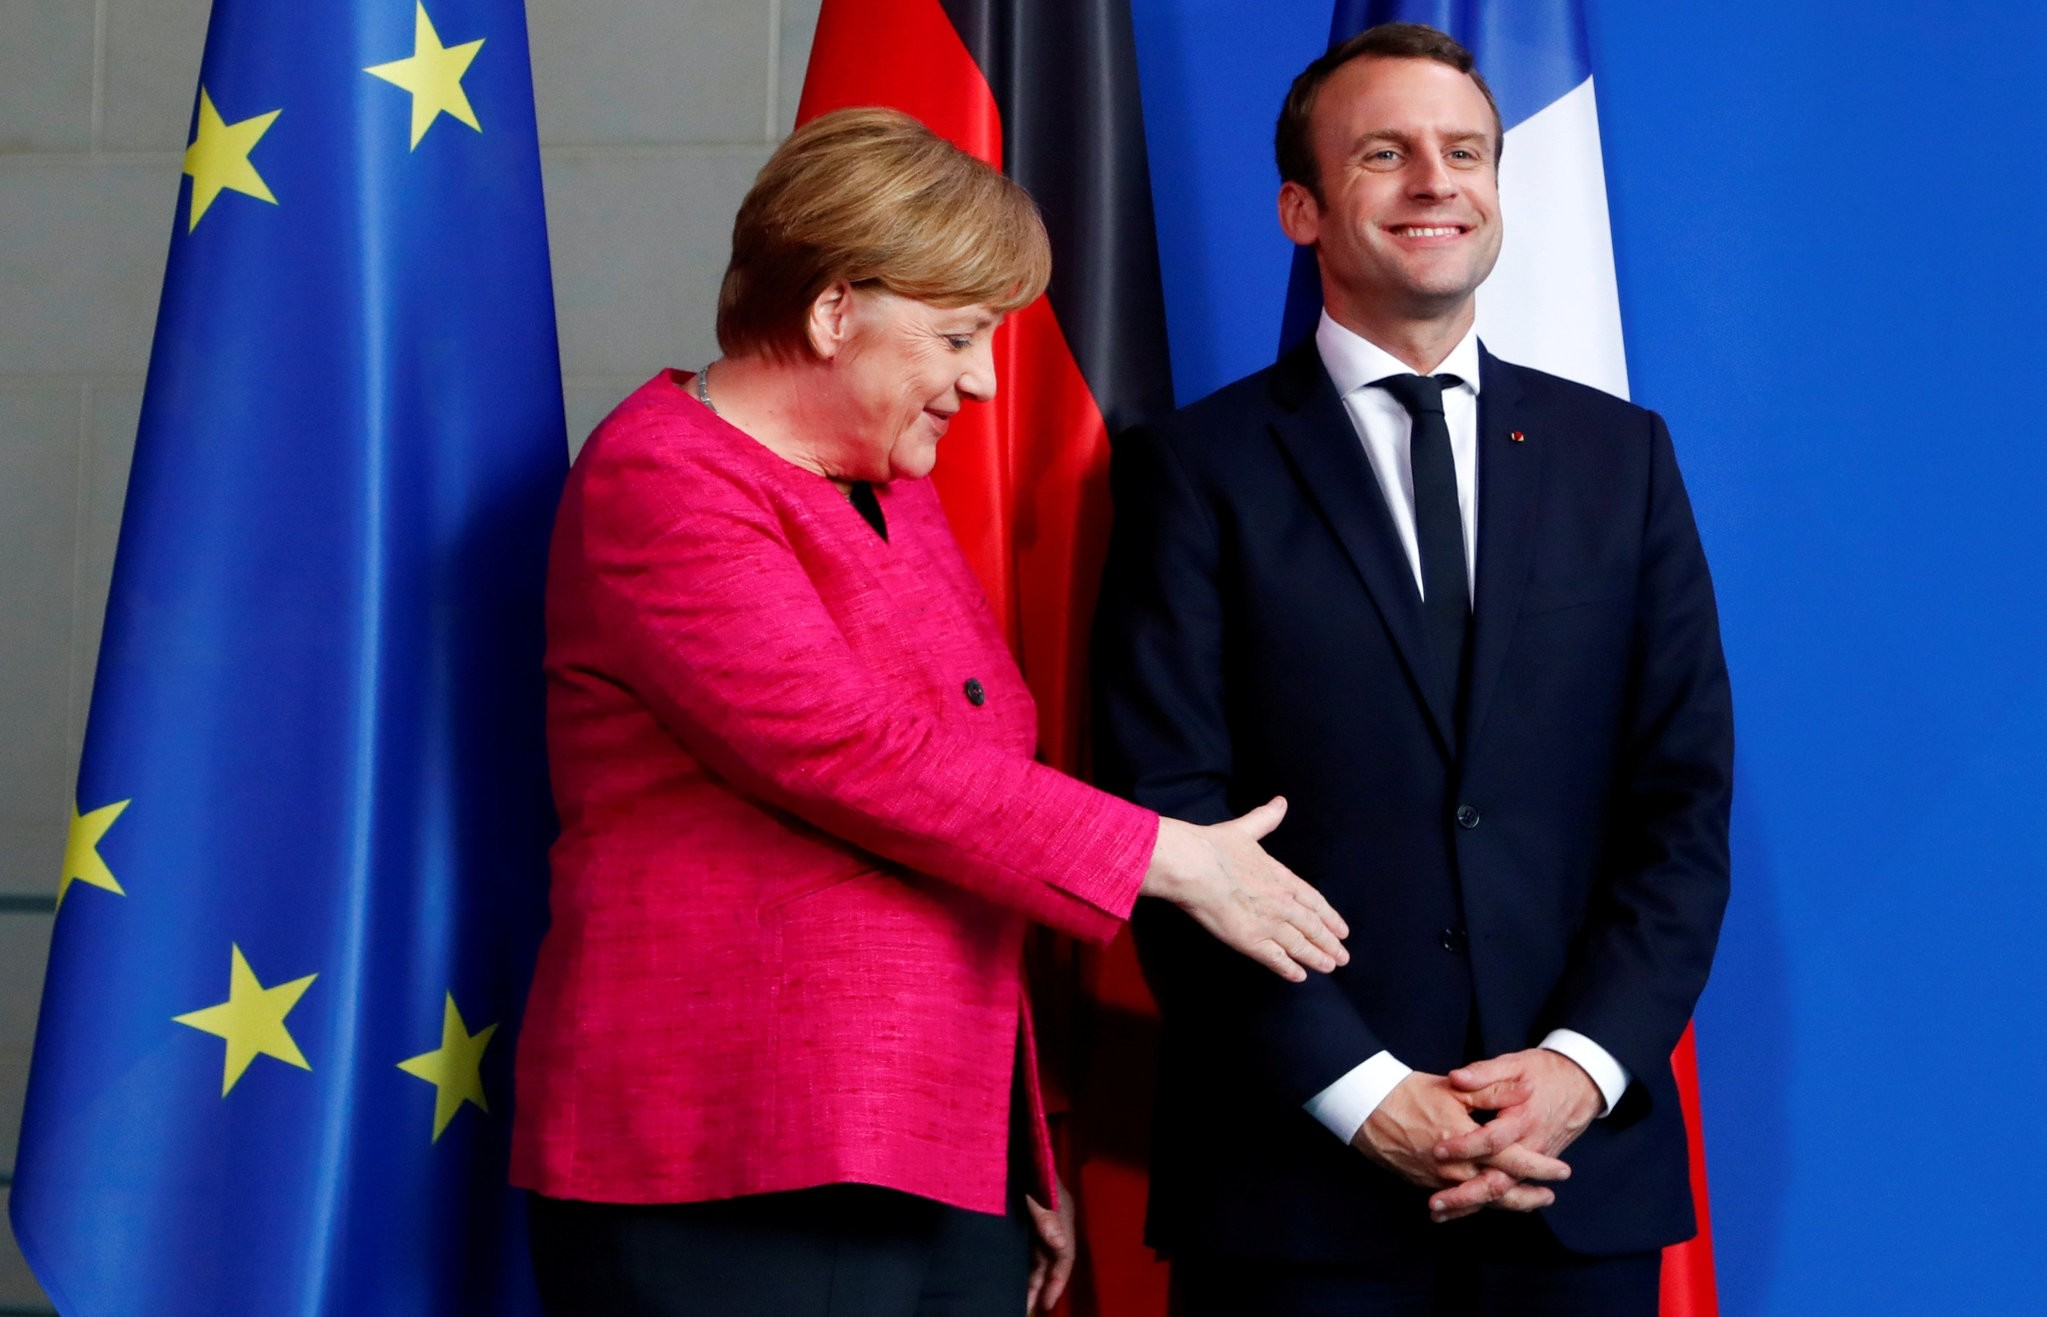 German Chancellor Angela Merkel and French President Emmanuel Macron after a news conference at the Chancellery in Berlin, May15.